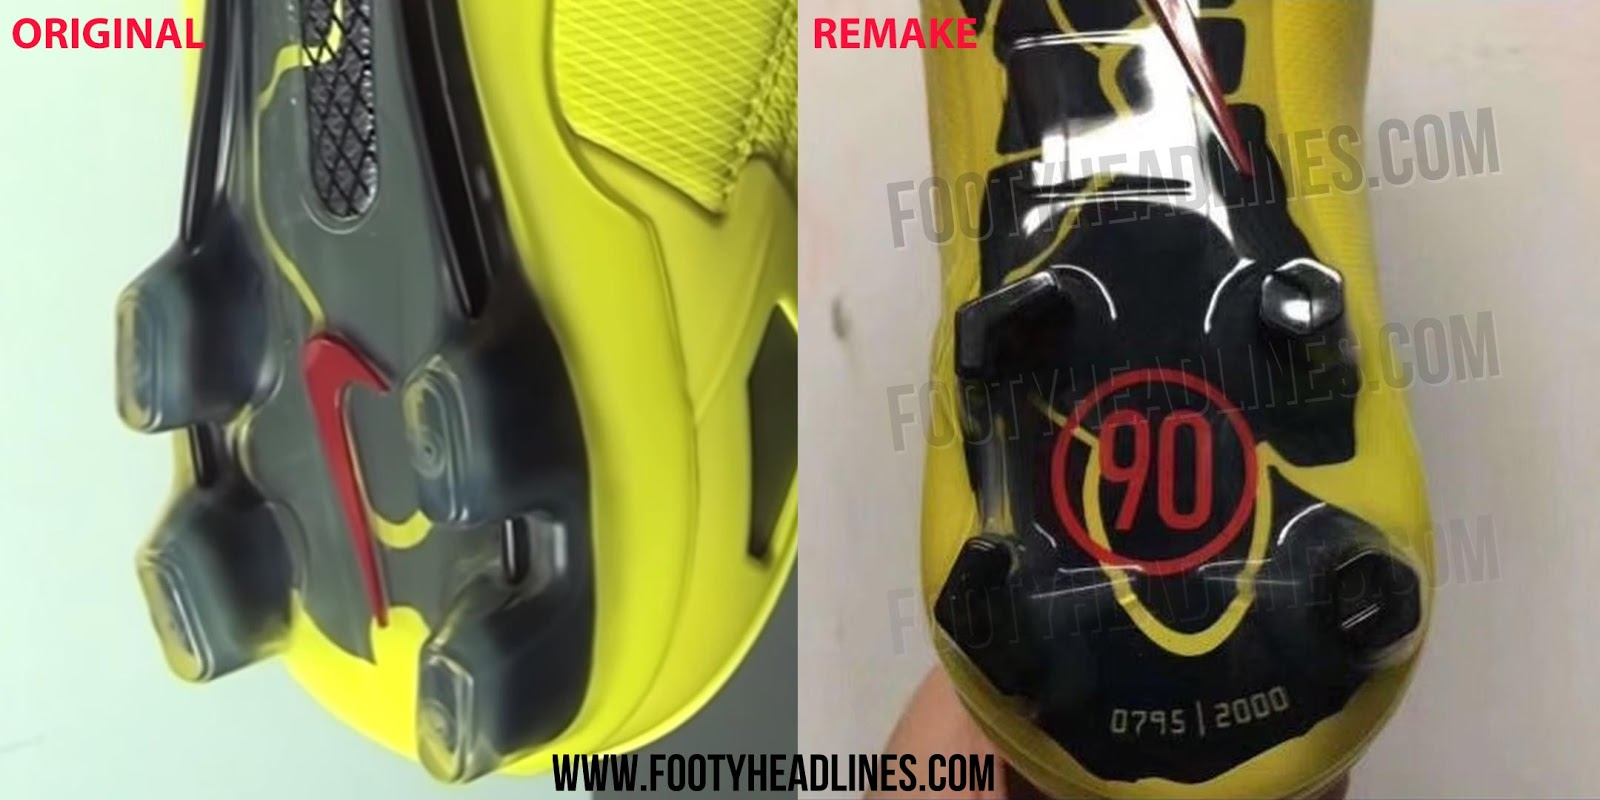 973653c7c4d54 Nike Total 90 Laser I Boots - 2019 Remake vs 2007 Original - Leaked ...